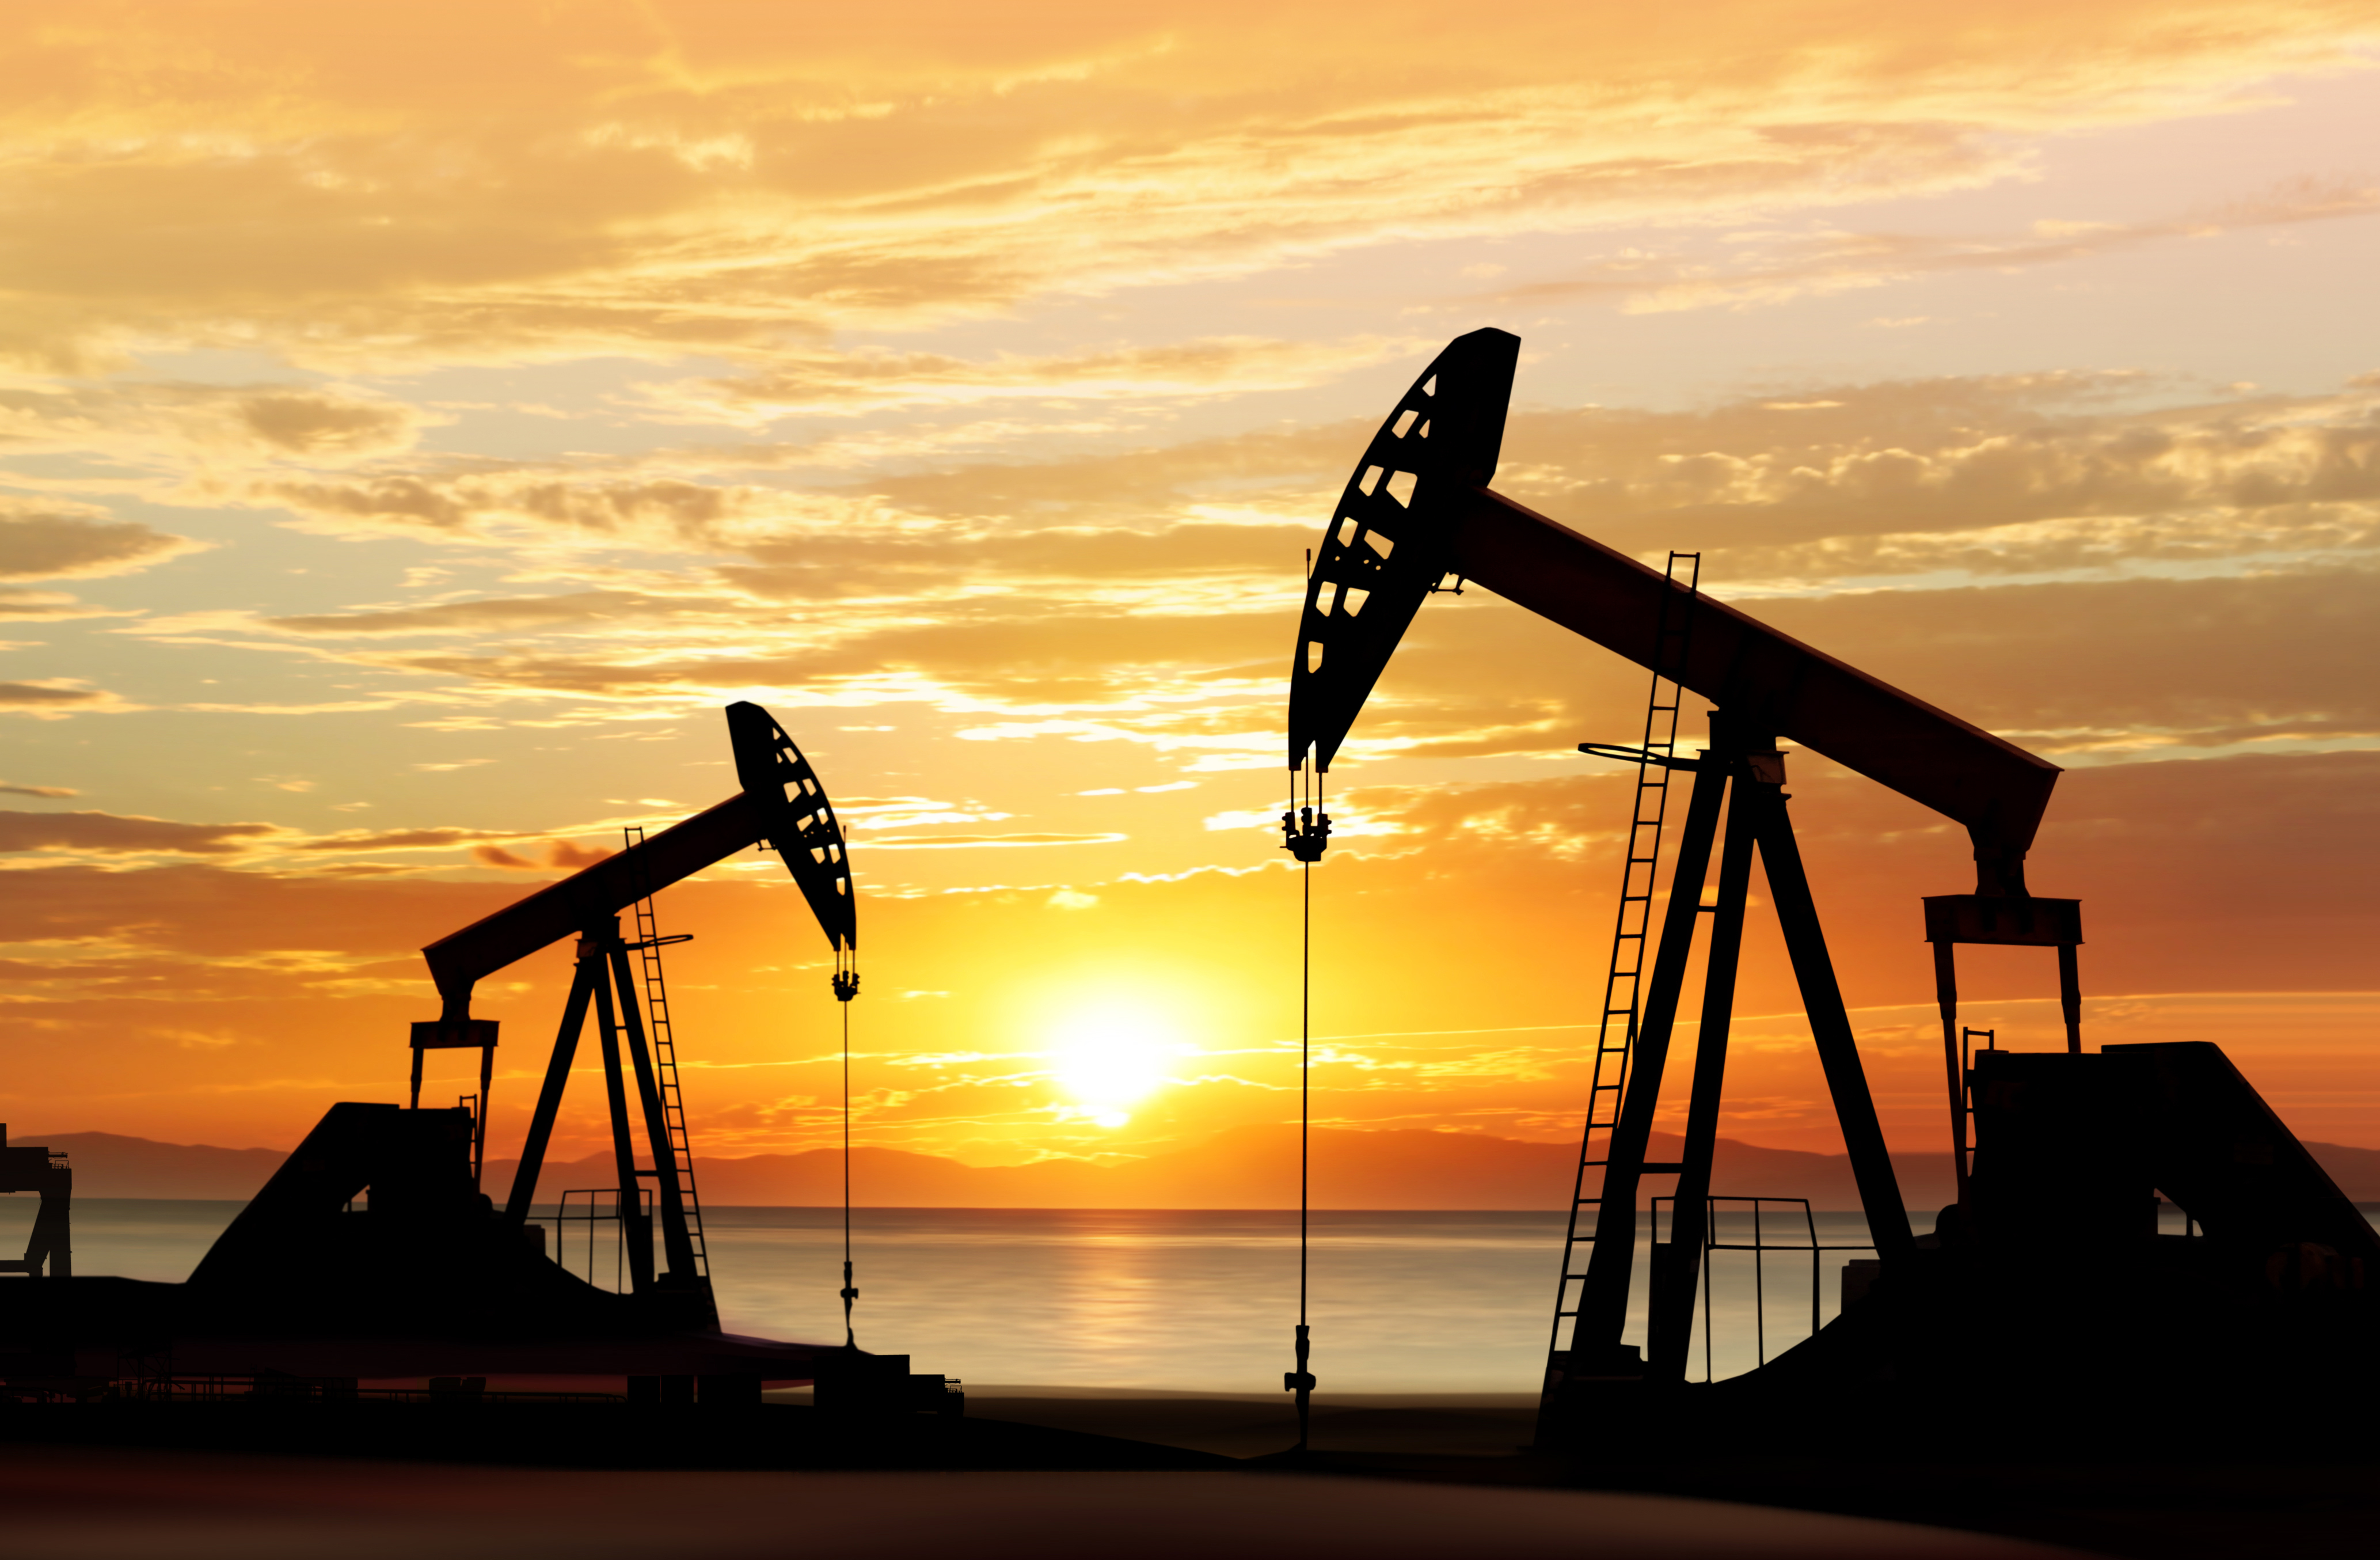 oil and gas services provided by hydrex